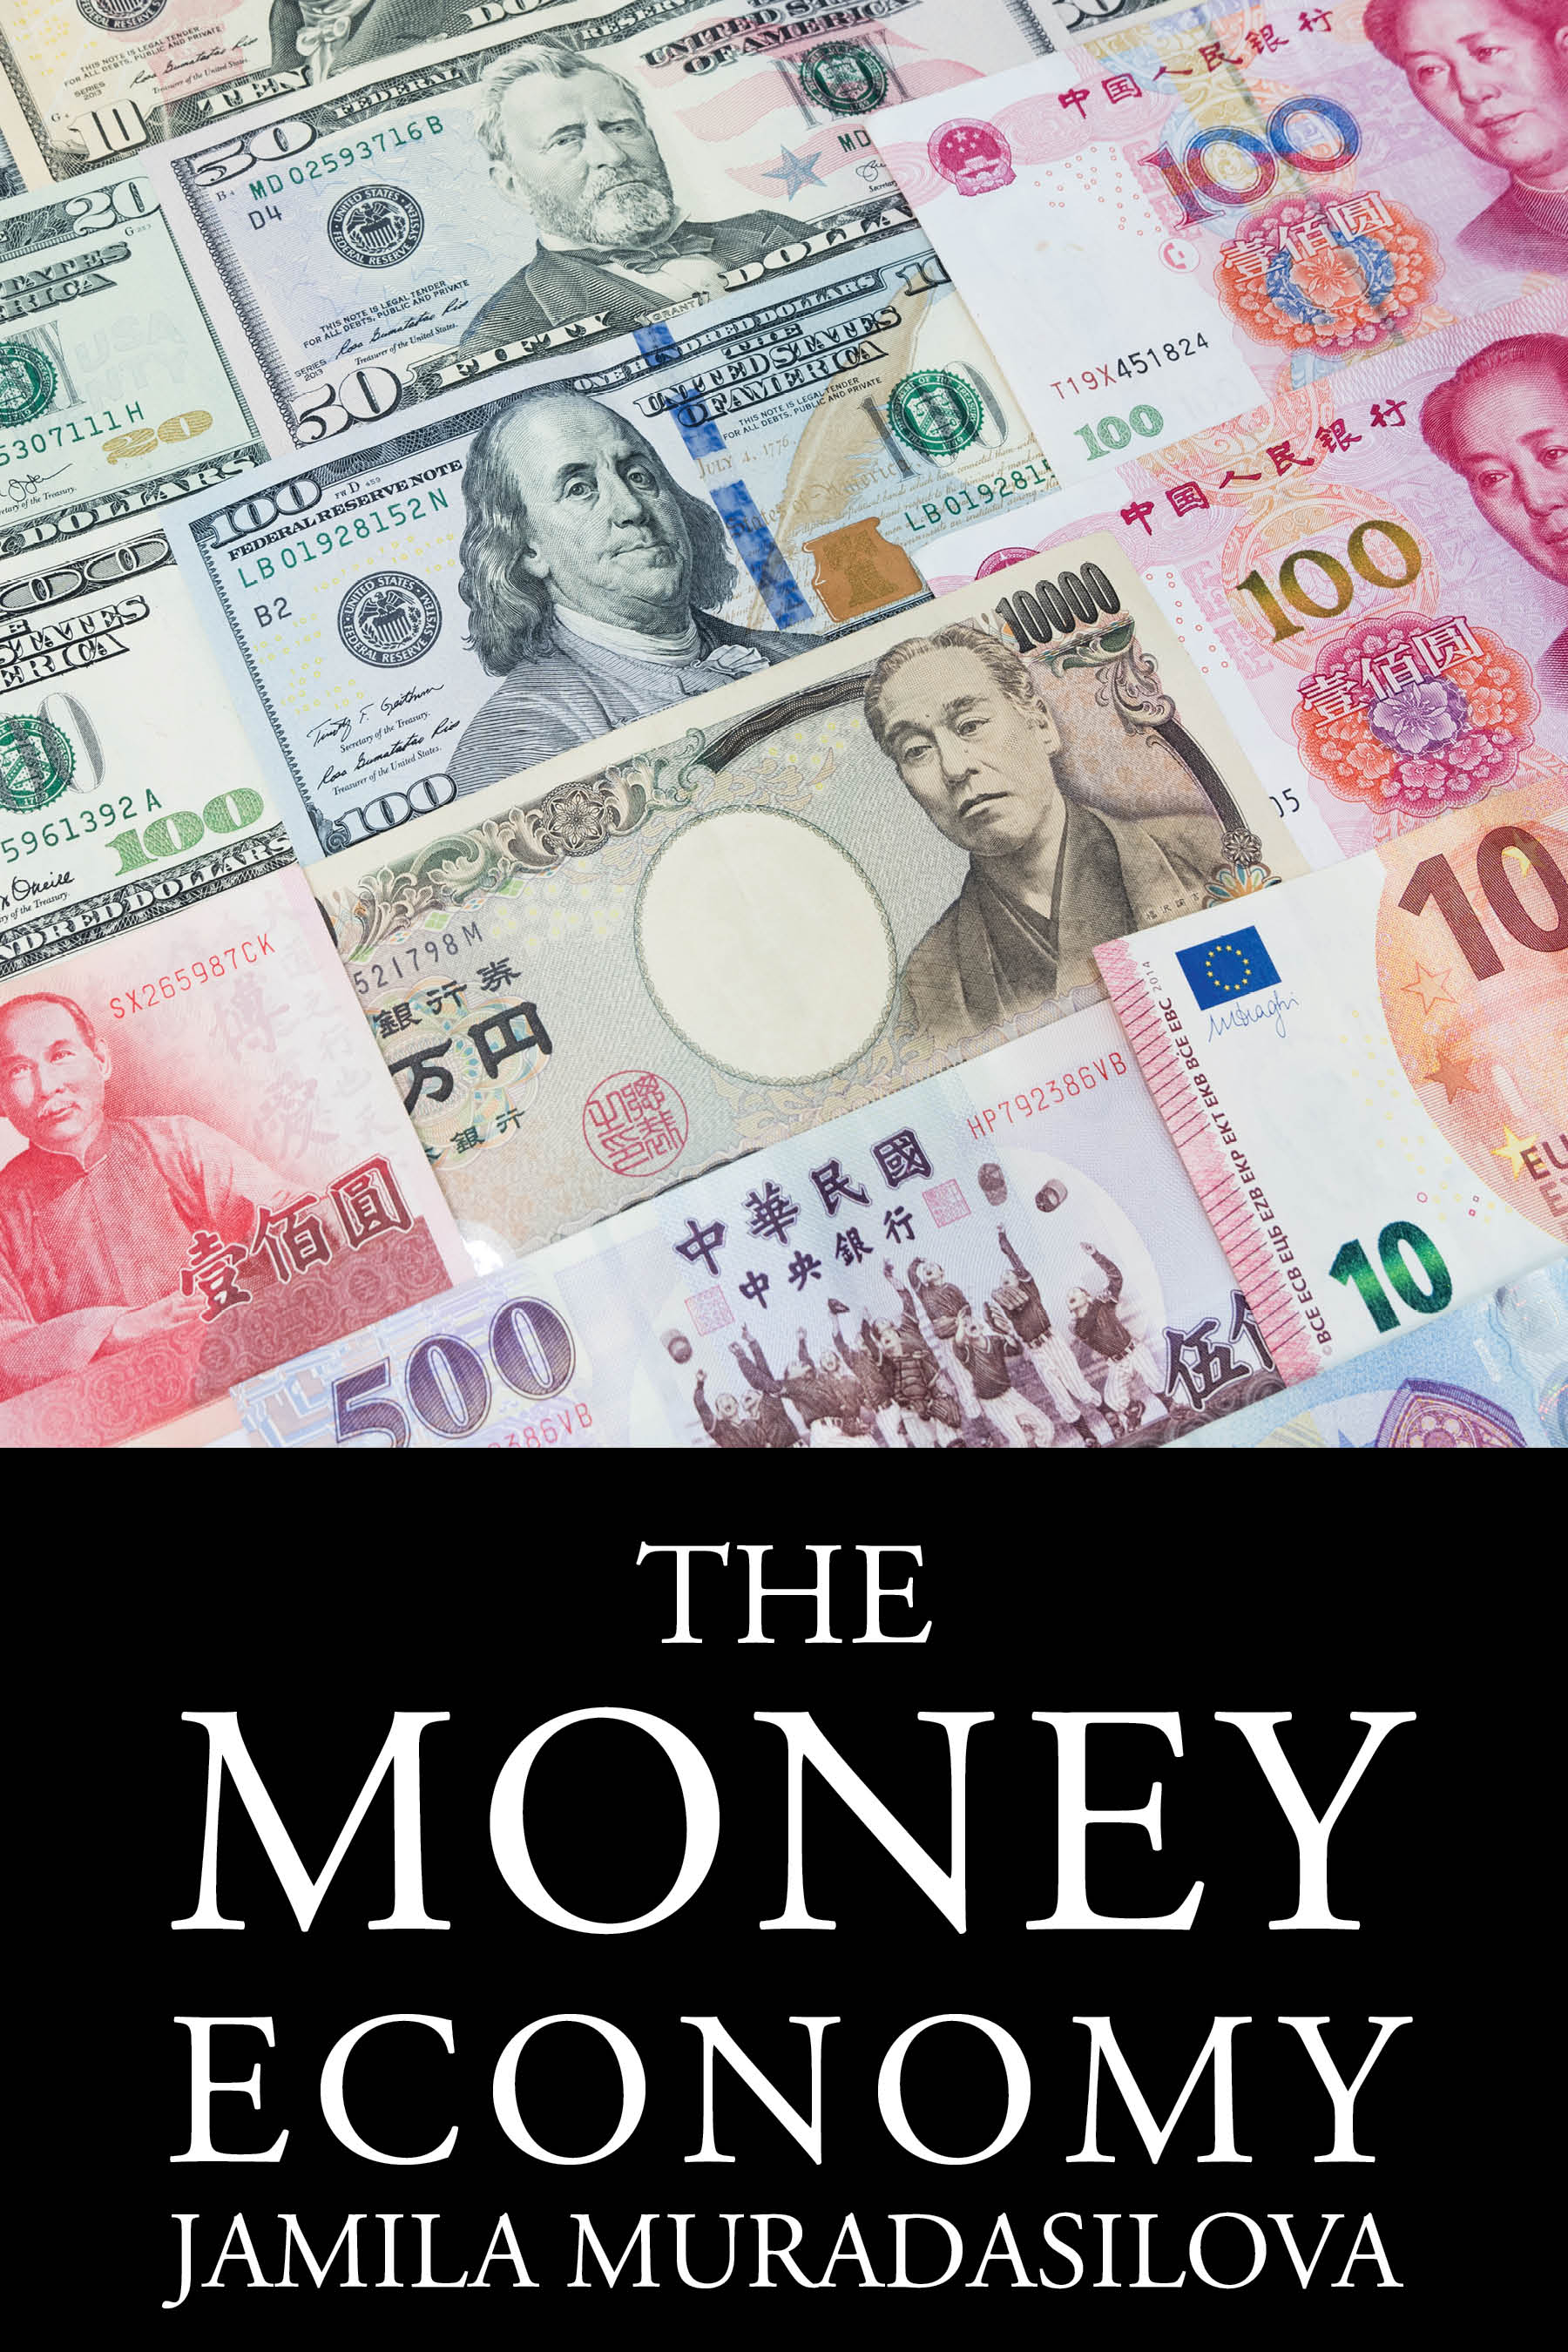 The Money Economy by Jamila Muradasilova